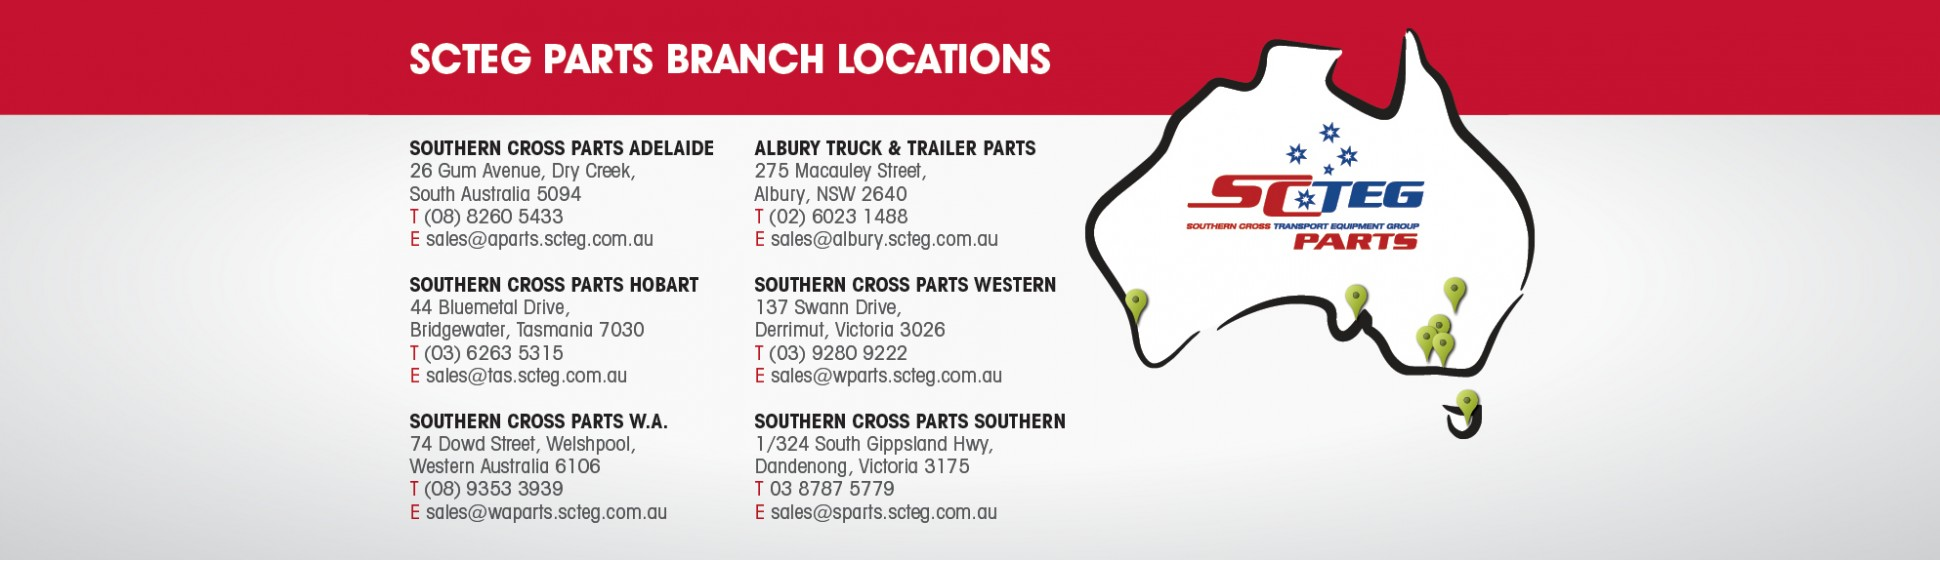 Truck Trailer Parts Branch Locations